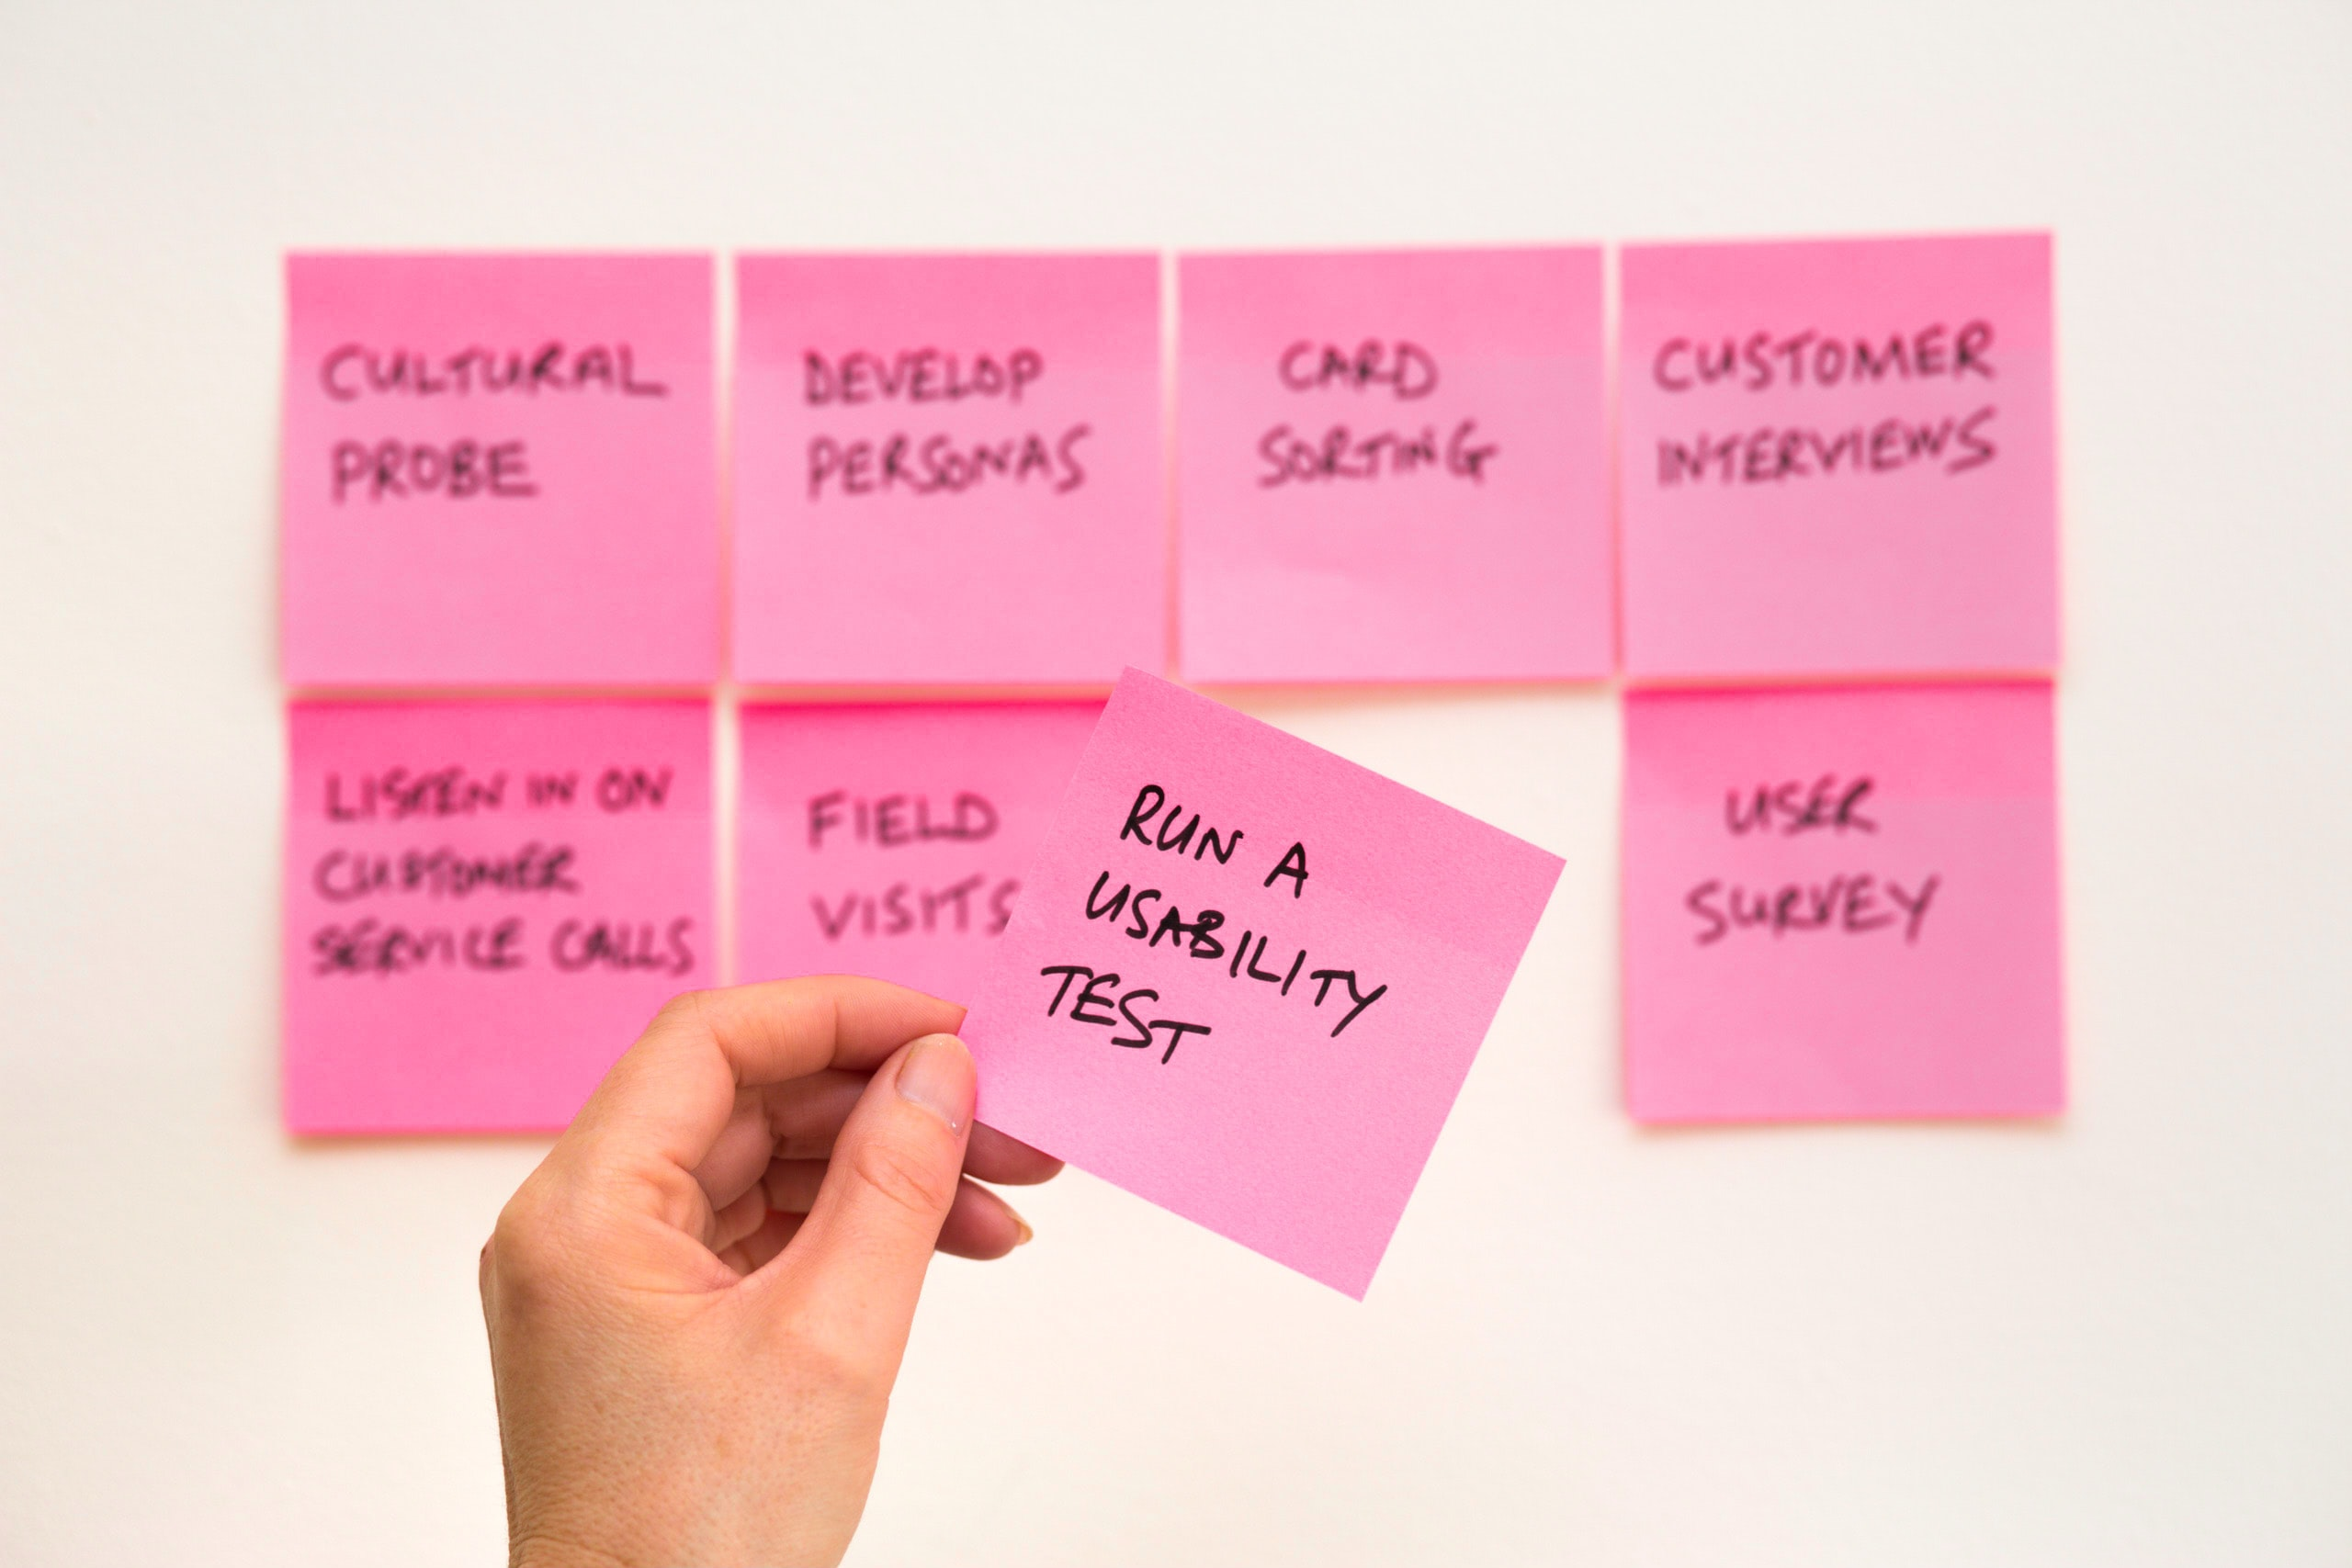 Image of post-its with the names of the Usability tools.